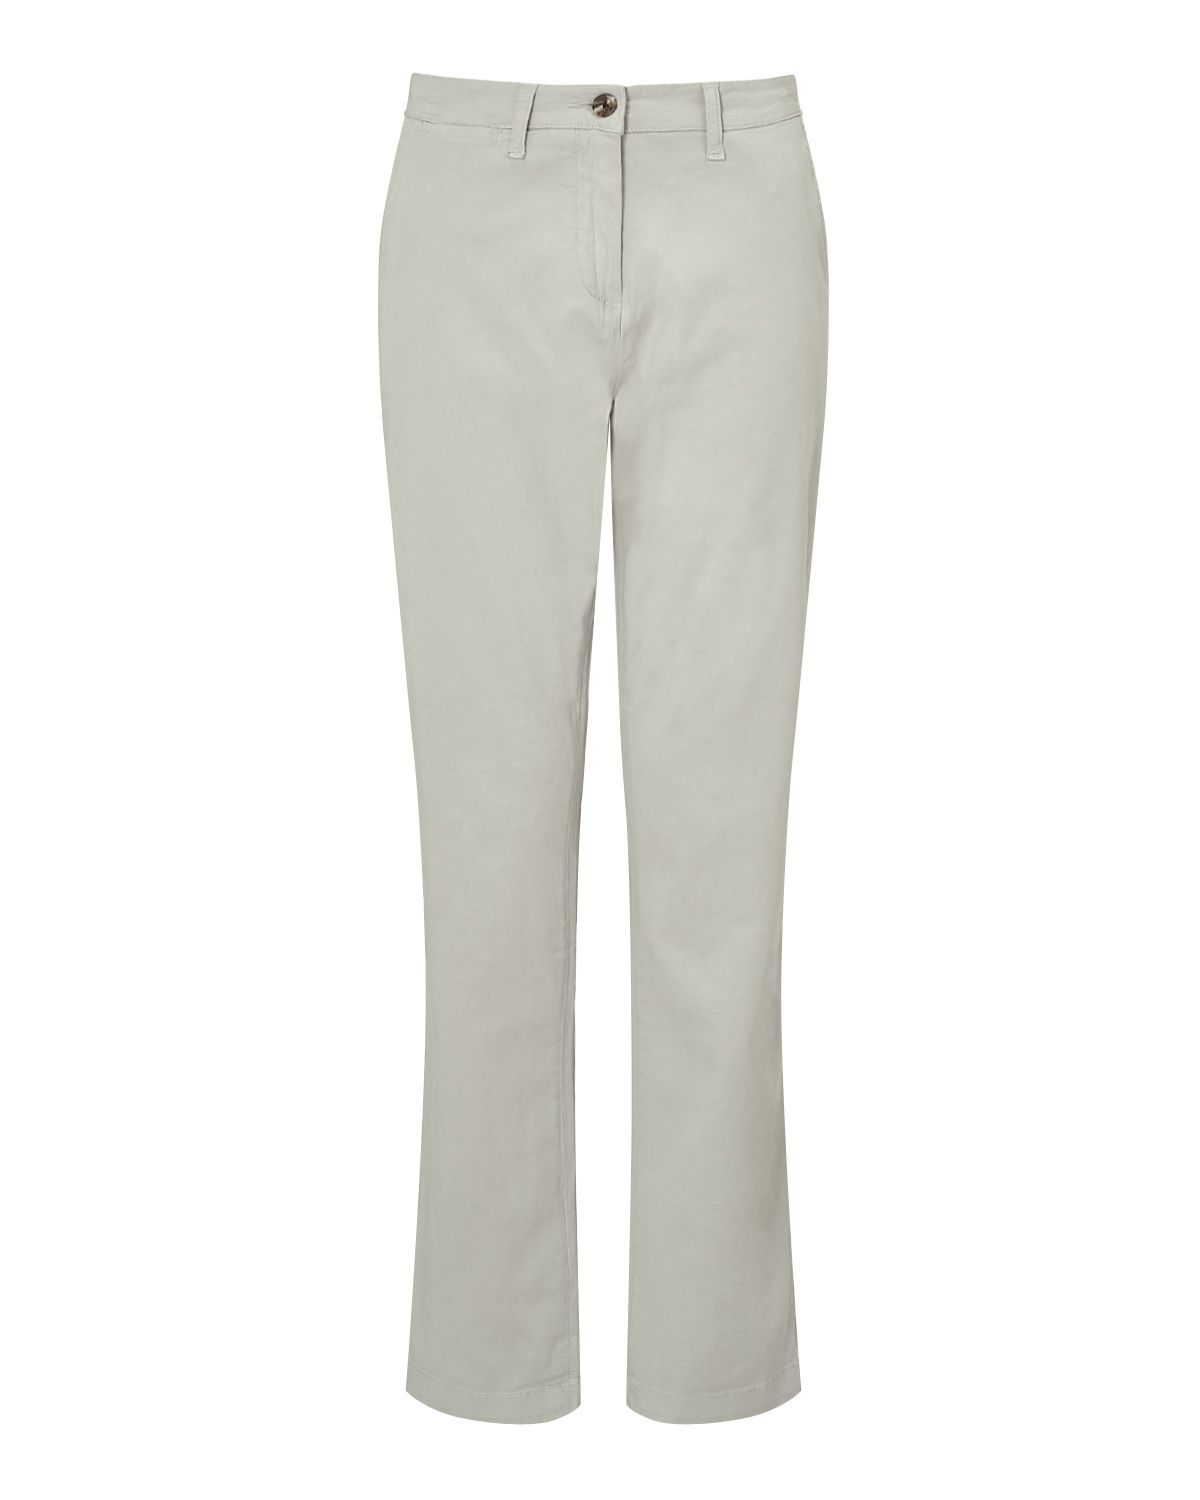 Jigsaw Washed Cotton Leg Chino, Grey